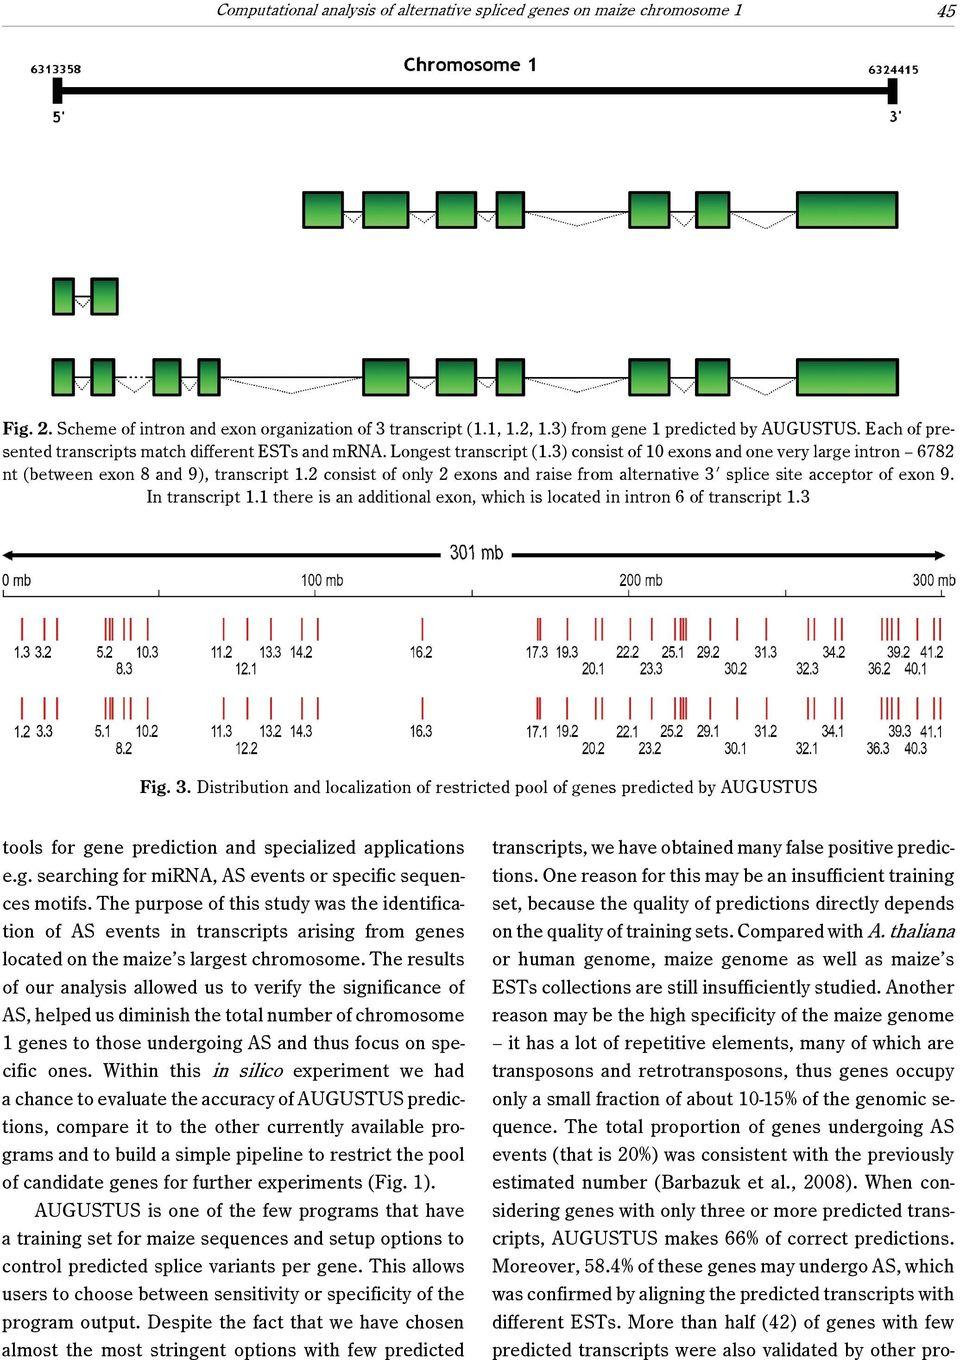 2 consist of only 2 exons and raise from alternative 3N splice site acceptor of exon 9. In transcript 1.1 there is an additional exon, which is located in intron 6 of transcript 1.3 Fig. 3. Distribution and localization of restricted pool of genes predicted by AUGUSTUS tools for gene prediction and specialized applications e.